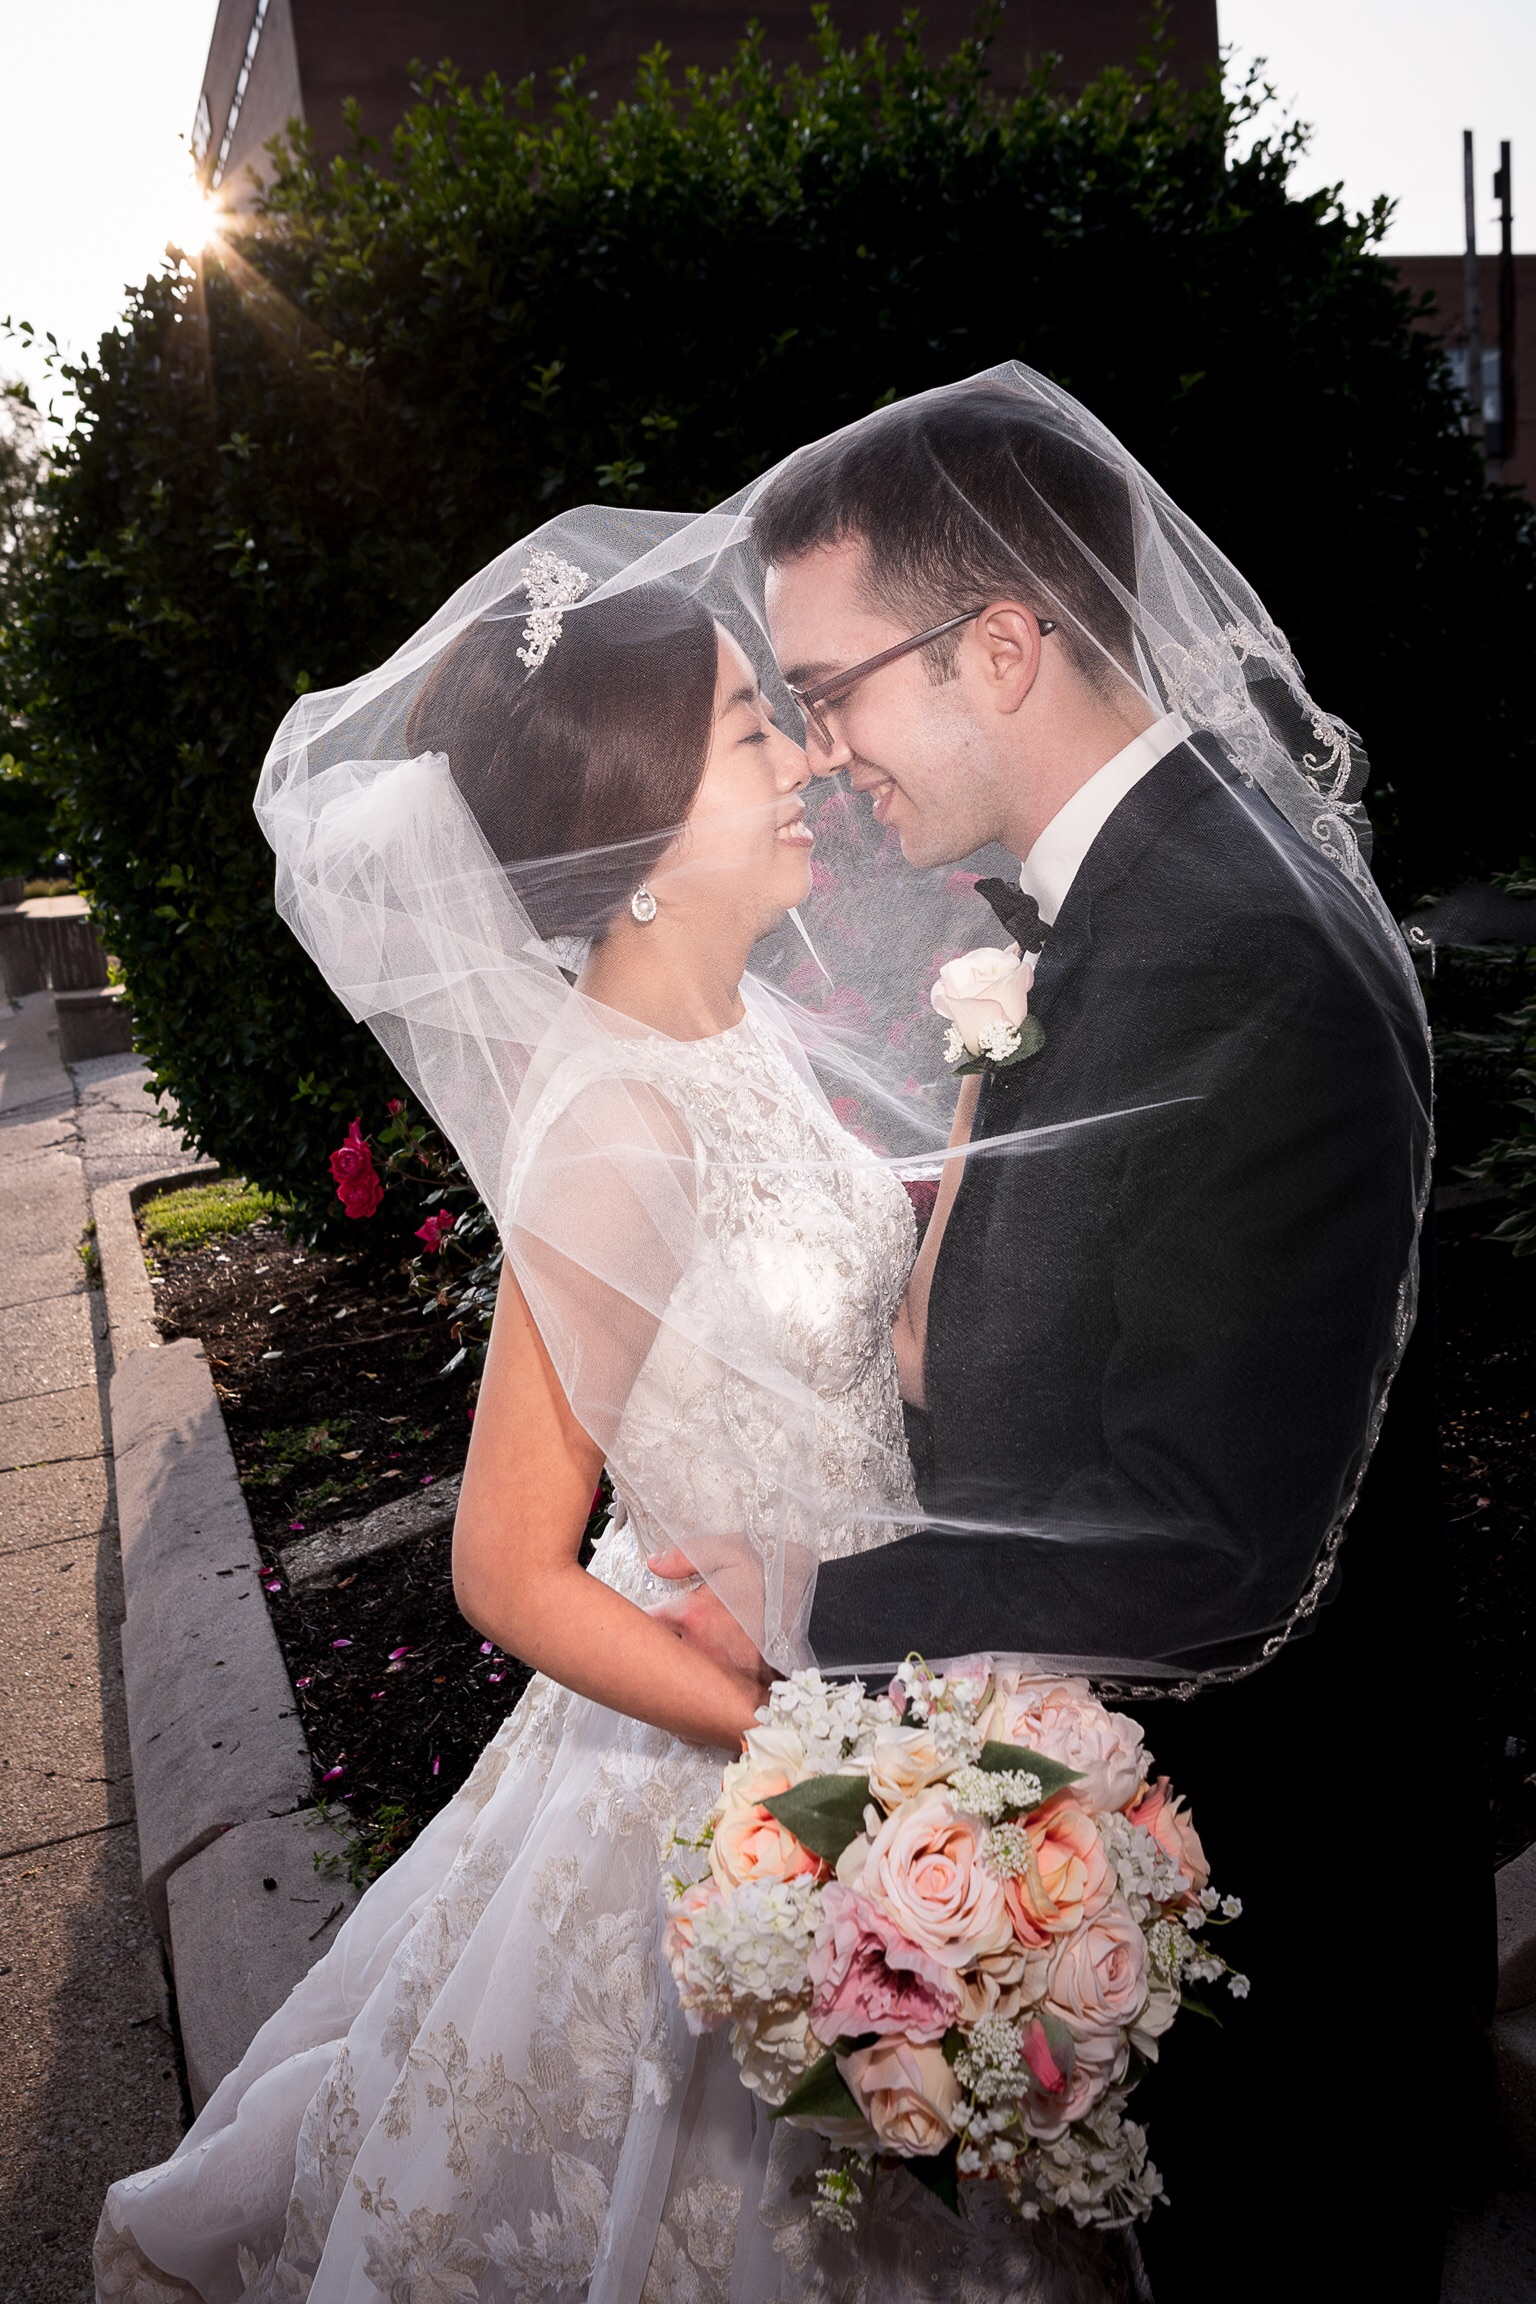 Bradley and Kate spend a few intimate moments under the veil after their ceremony at the Old Medical School Building in louisville